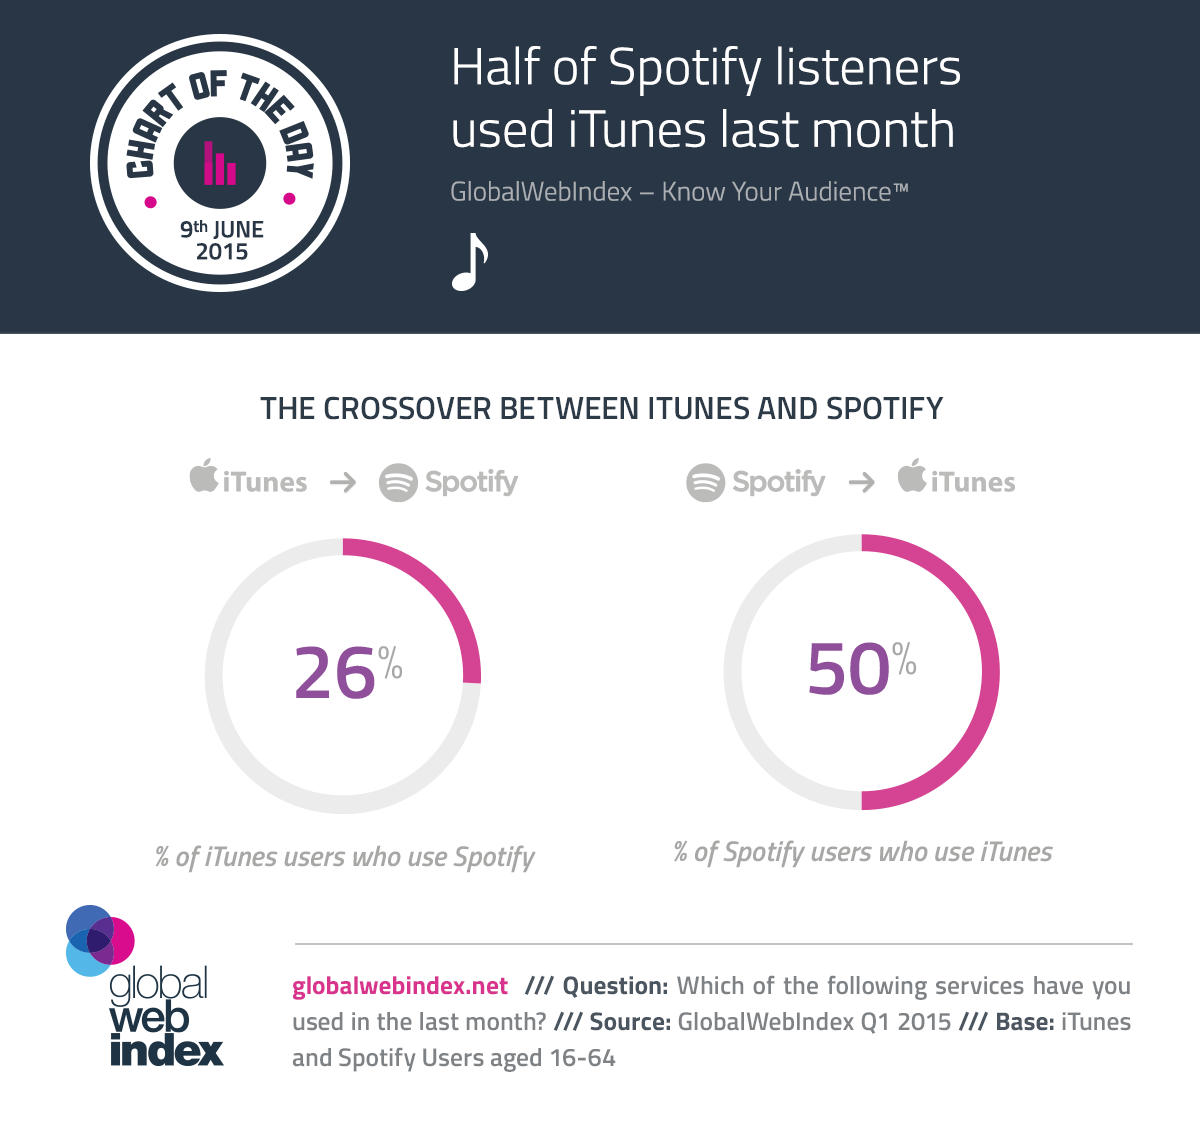 9th-June-2015-Half-of-Spotify-listeners-used-iTunes-last-month